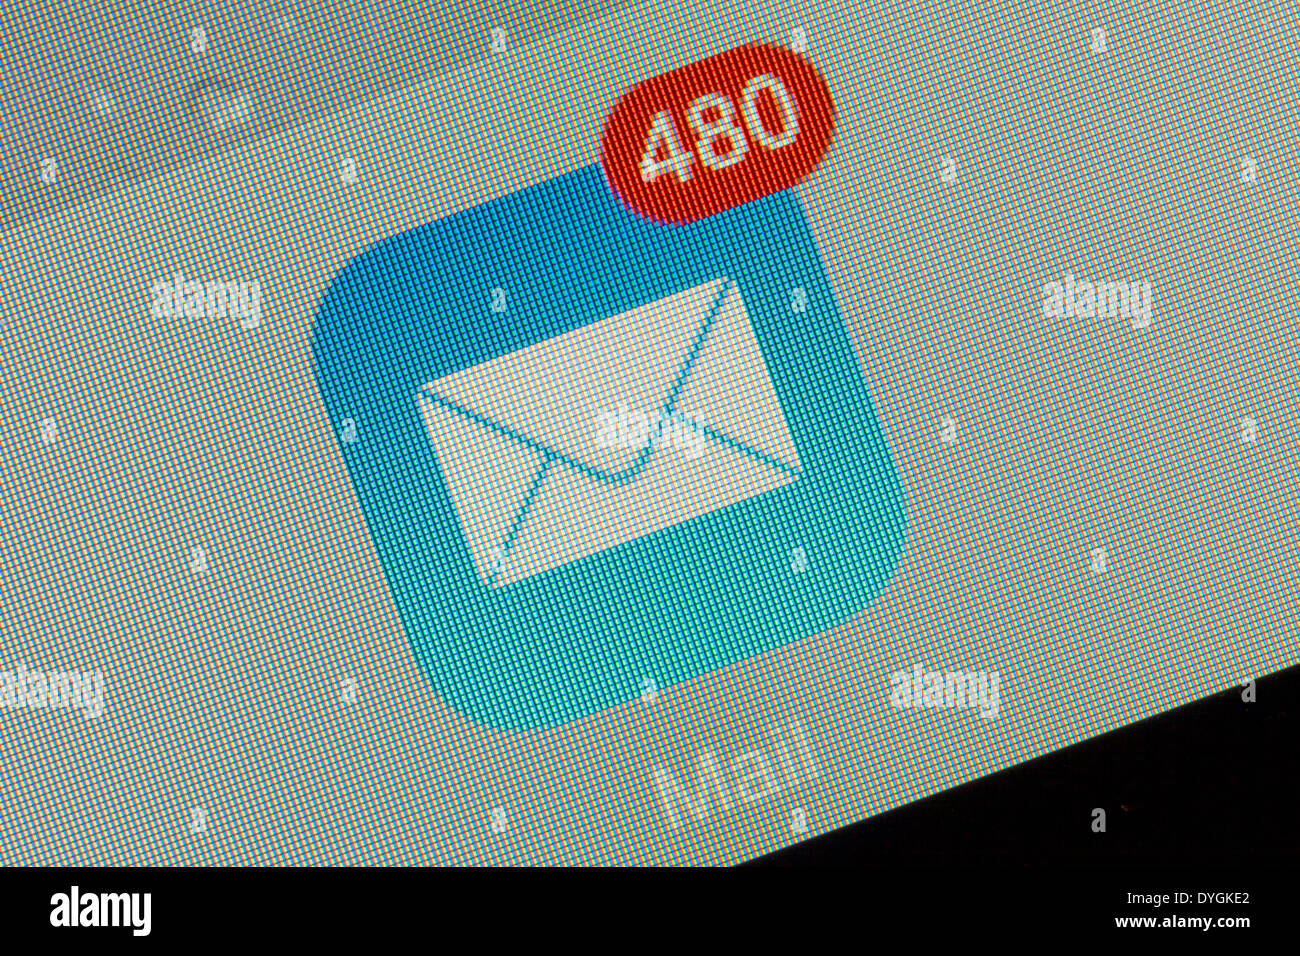 eMail inbox logo app icon with mail waiting on an iPad - Stock Image